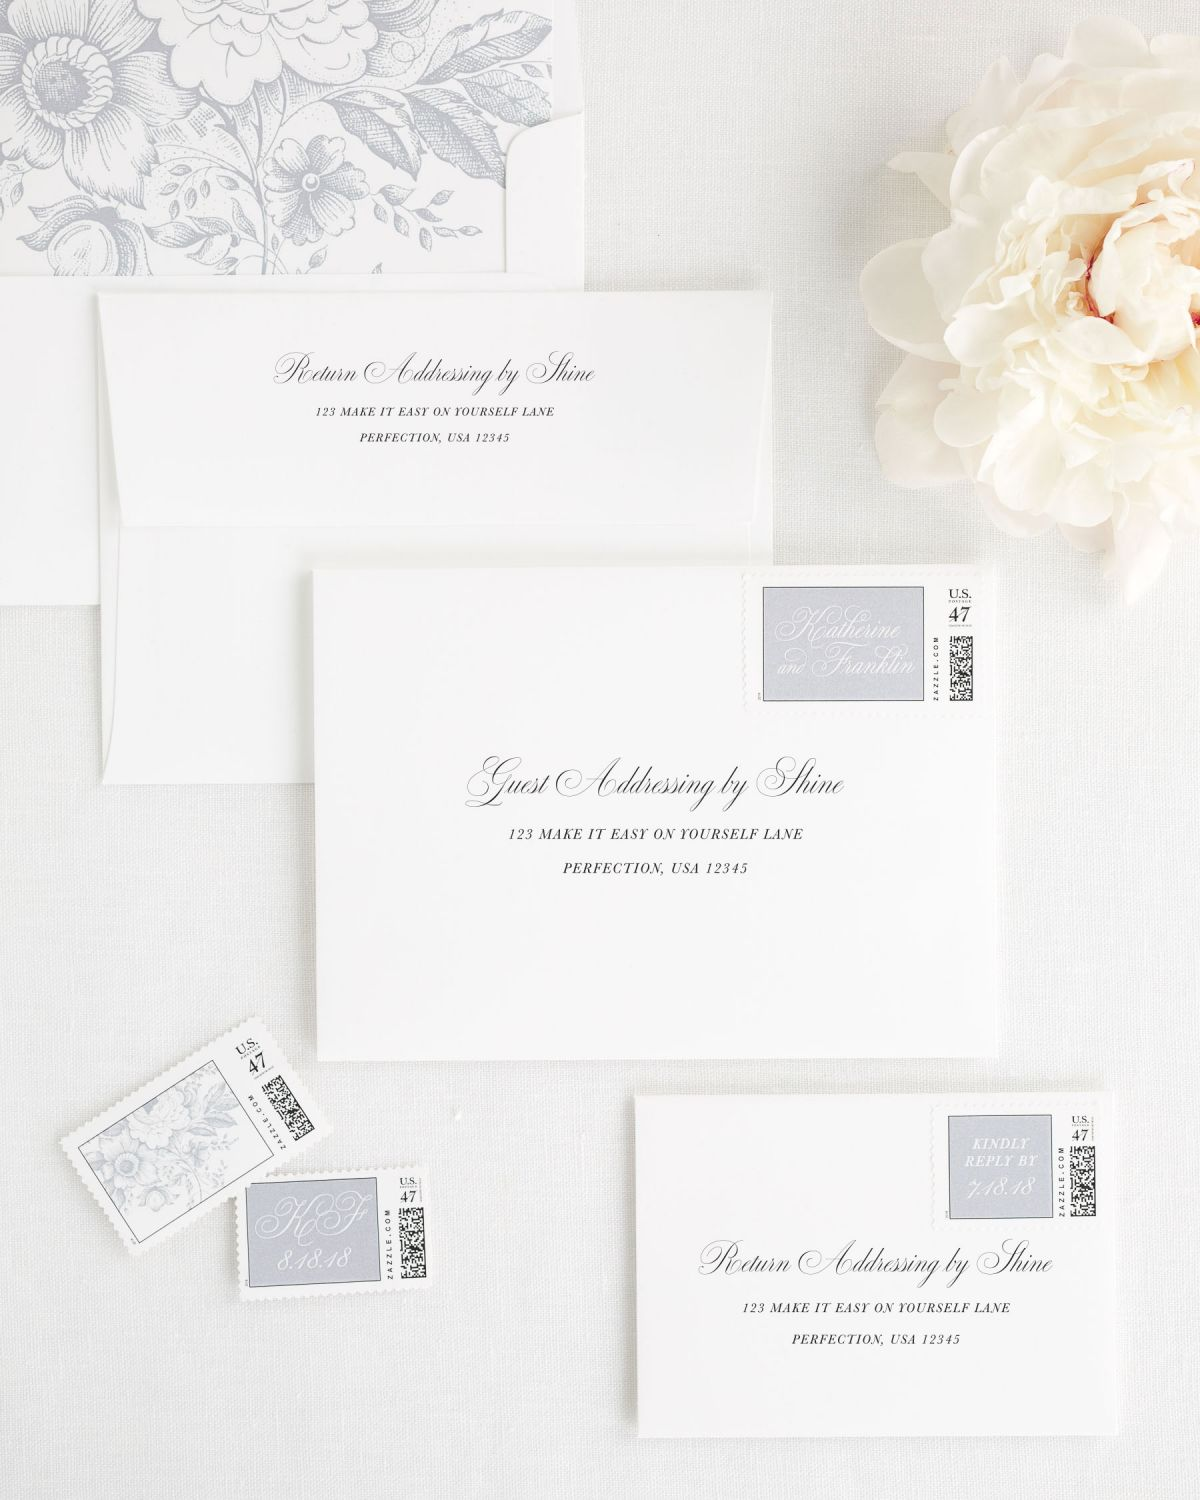 guest addressing and return addressing on wedding envelopes with custom stamps